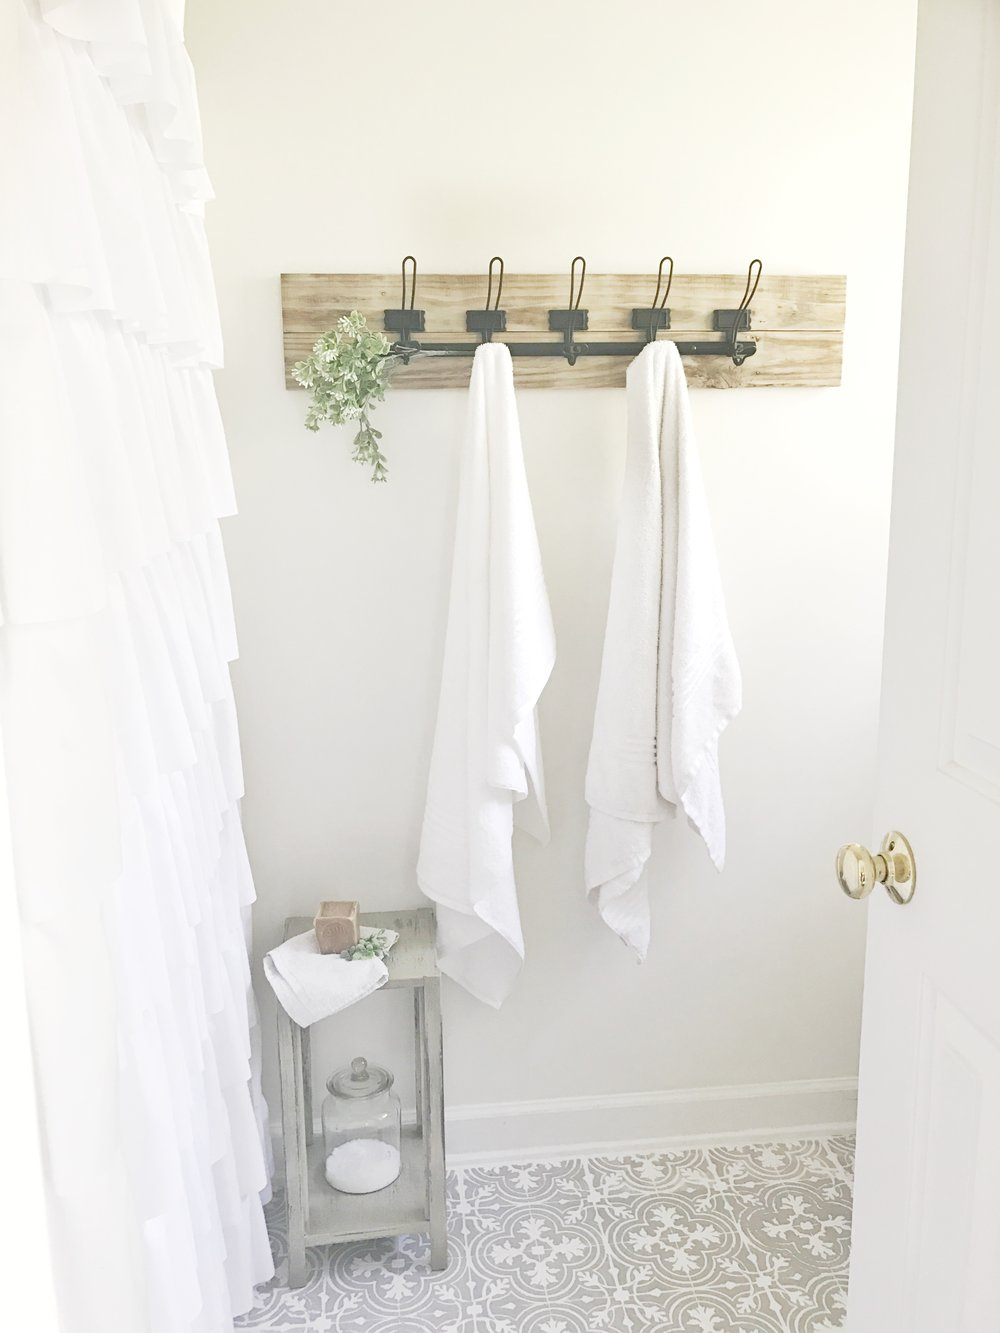 Full Tour- Farmhouse Budget Friendly Weekend Budget Friendly Bathroom Makeover- By Plum Pretty Decor and Design